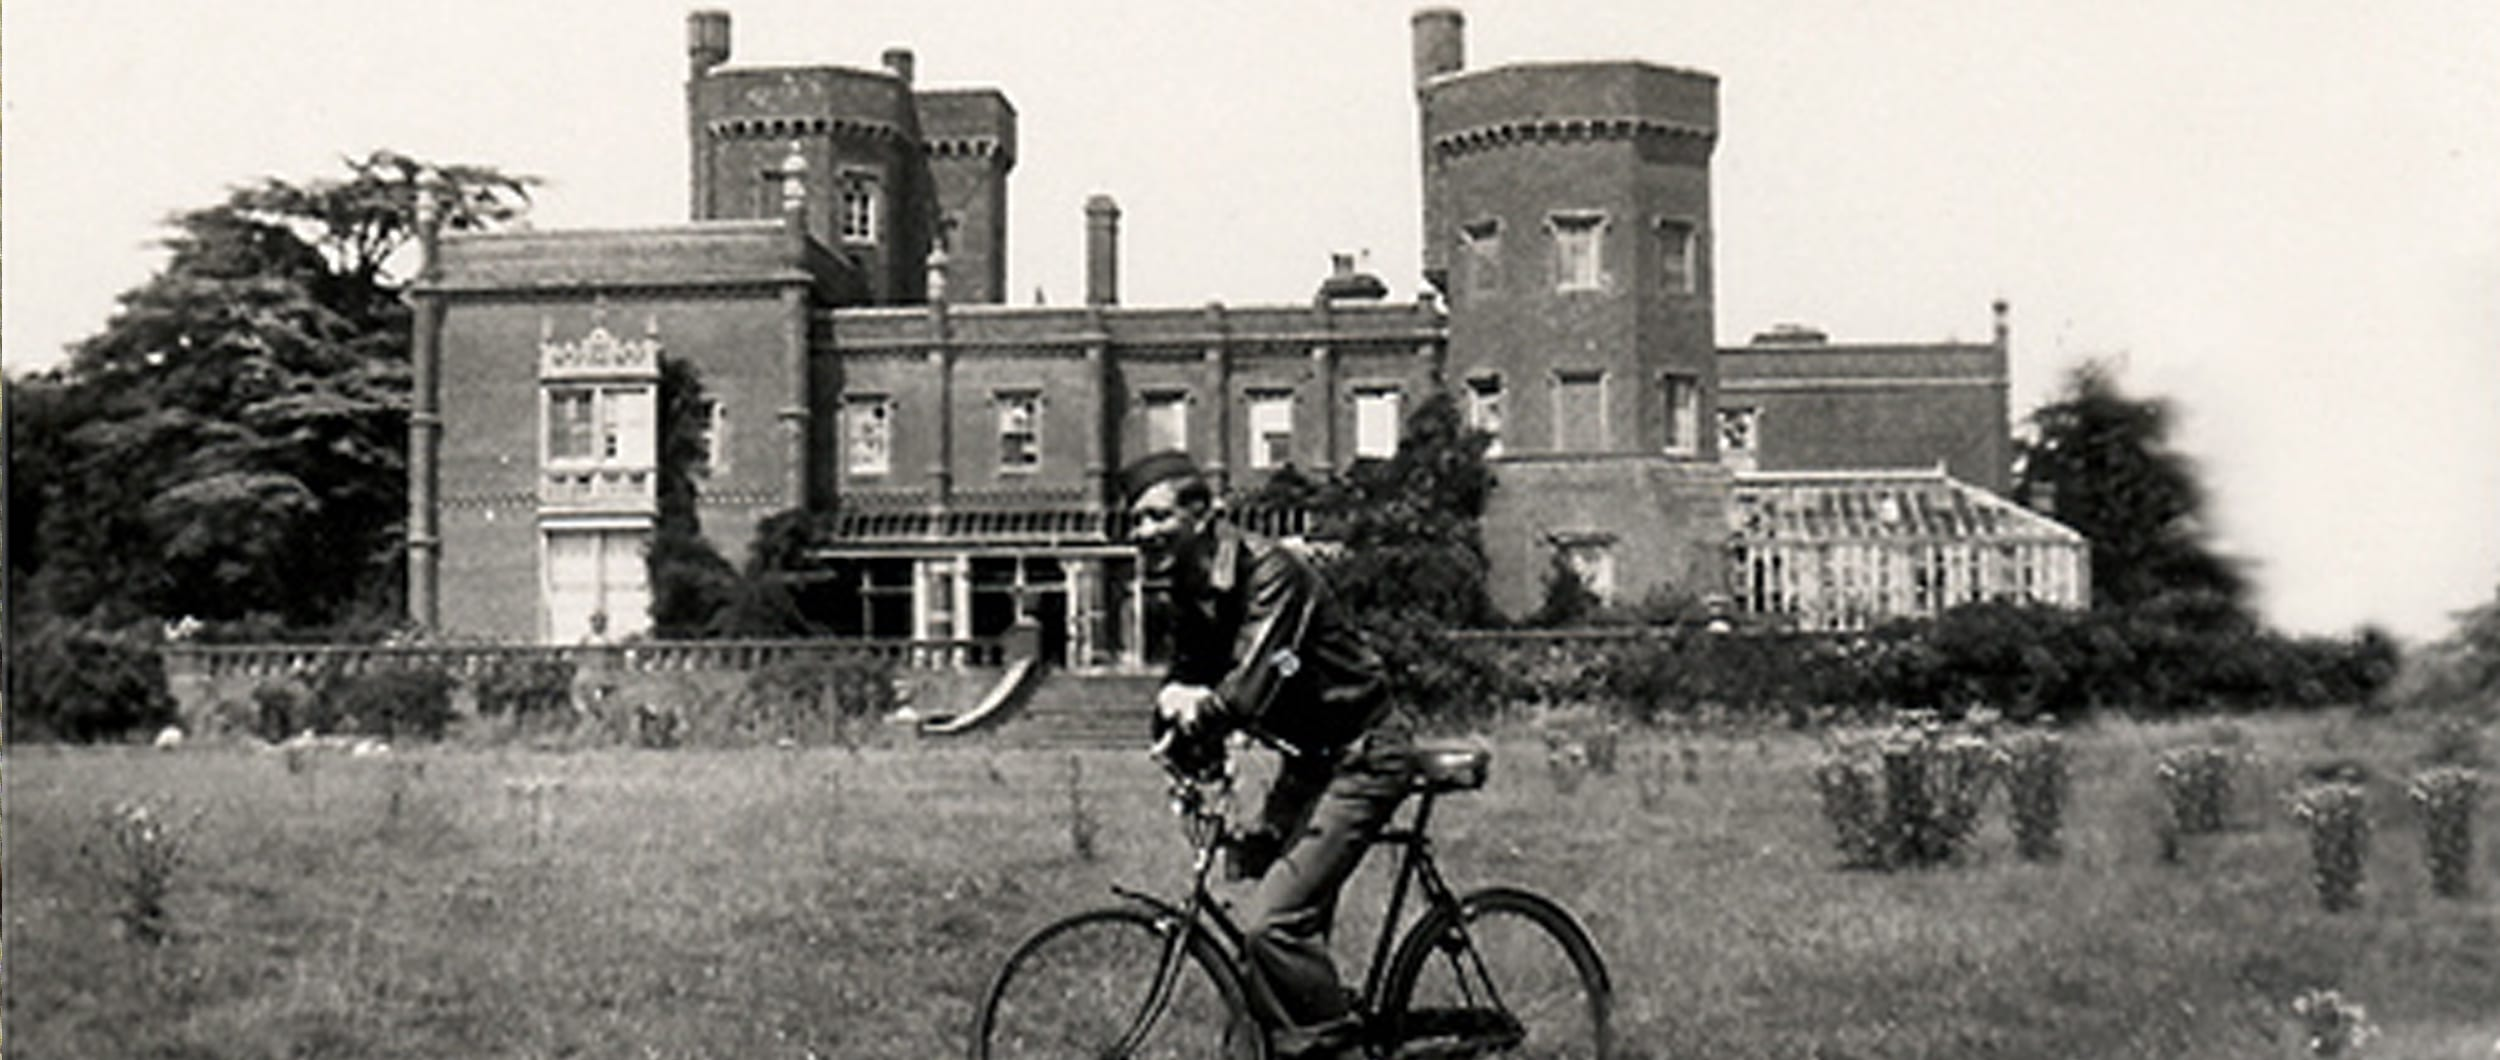 Soldier on bike in front of Rougham Hall